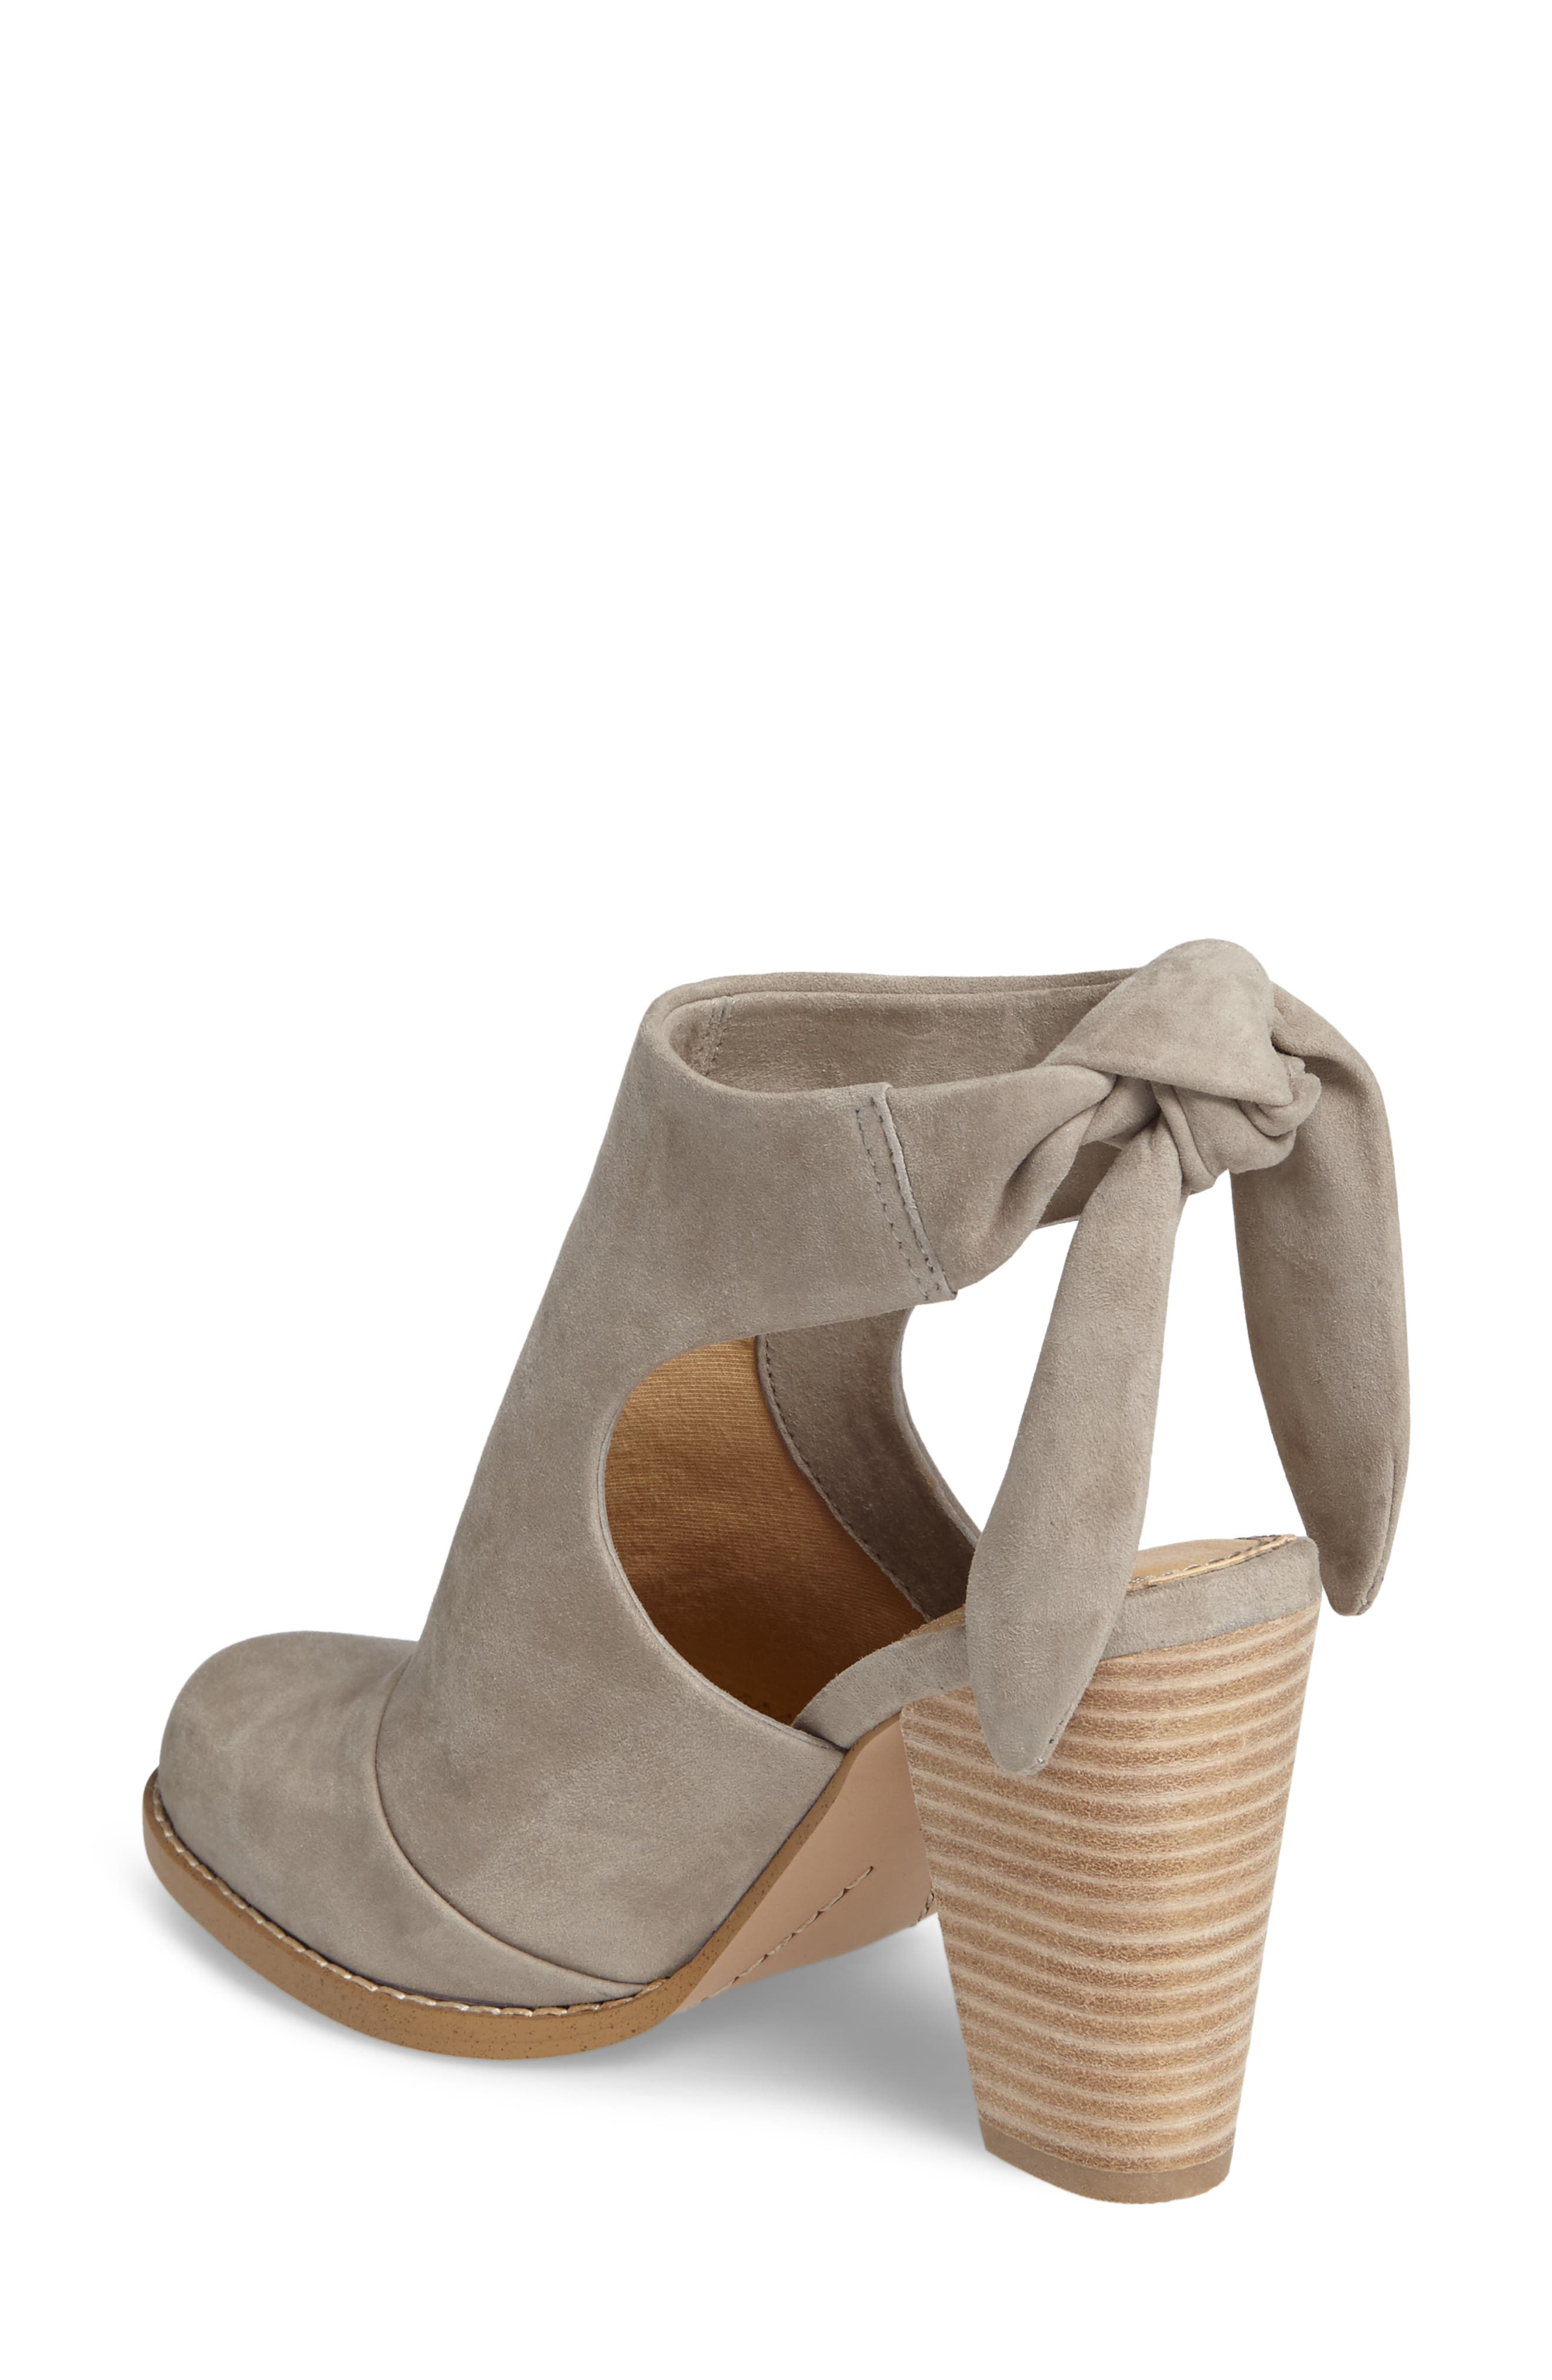 Danae Stacked Heel Bootie,                             Alternate thumbnail 4, color,